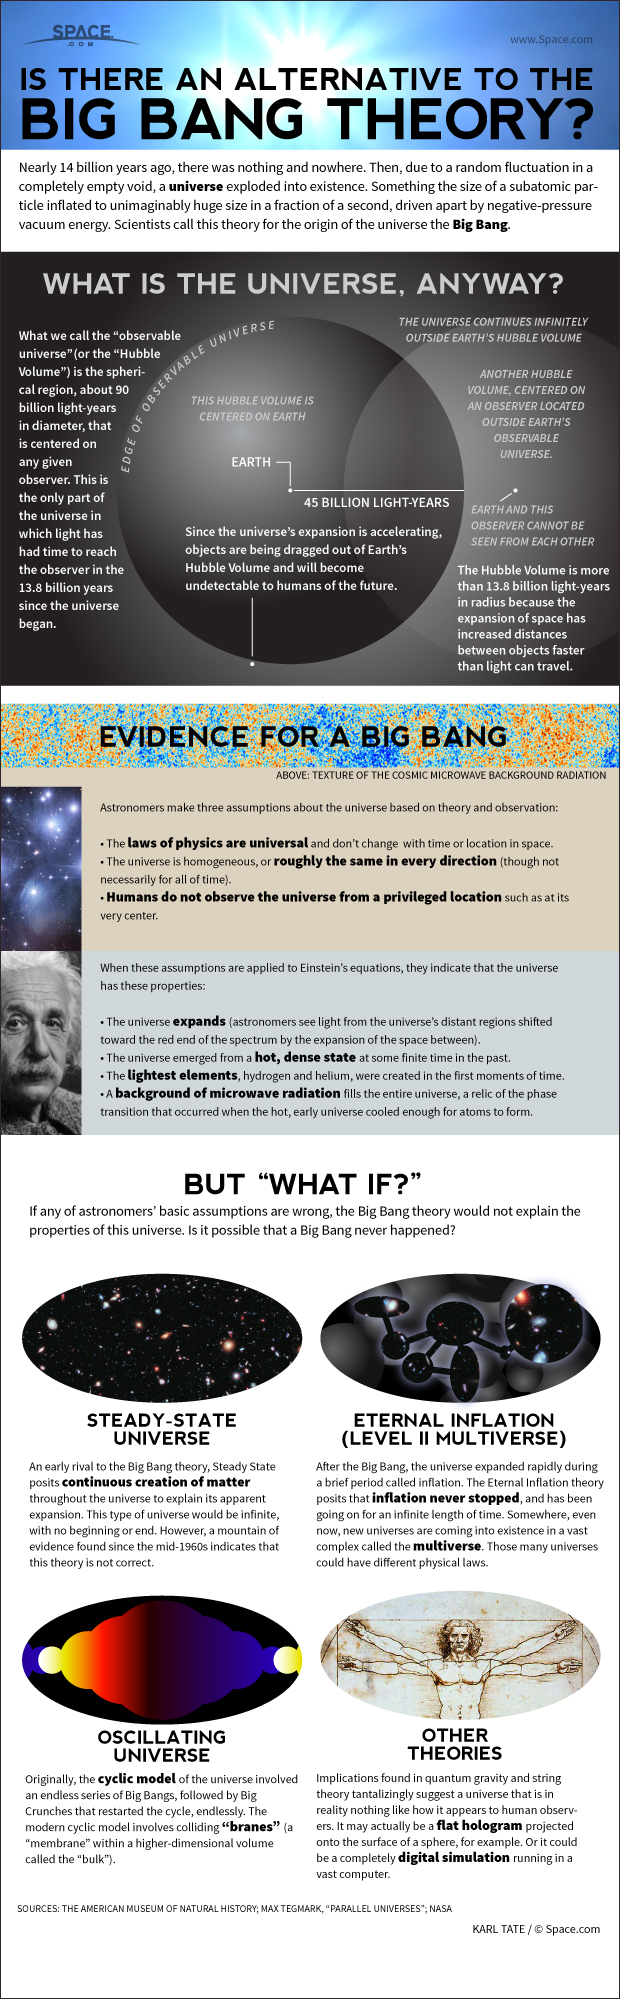 Alternatives to the Big Bang Theory Explained (Infographic)